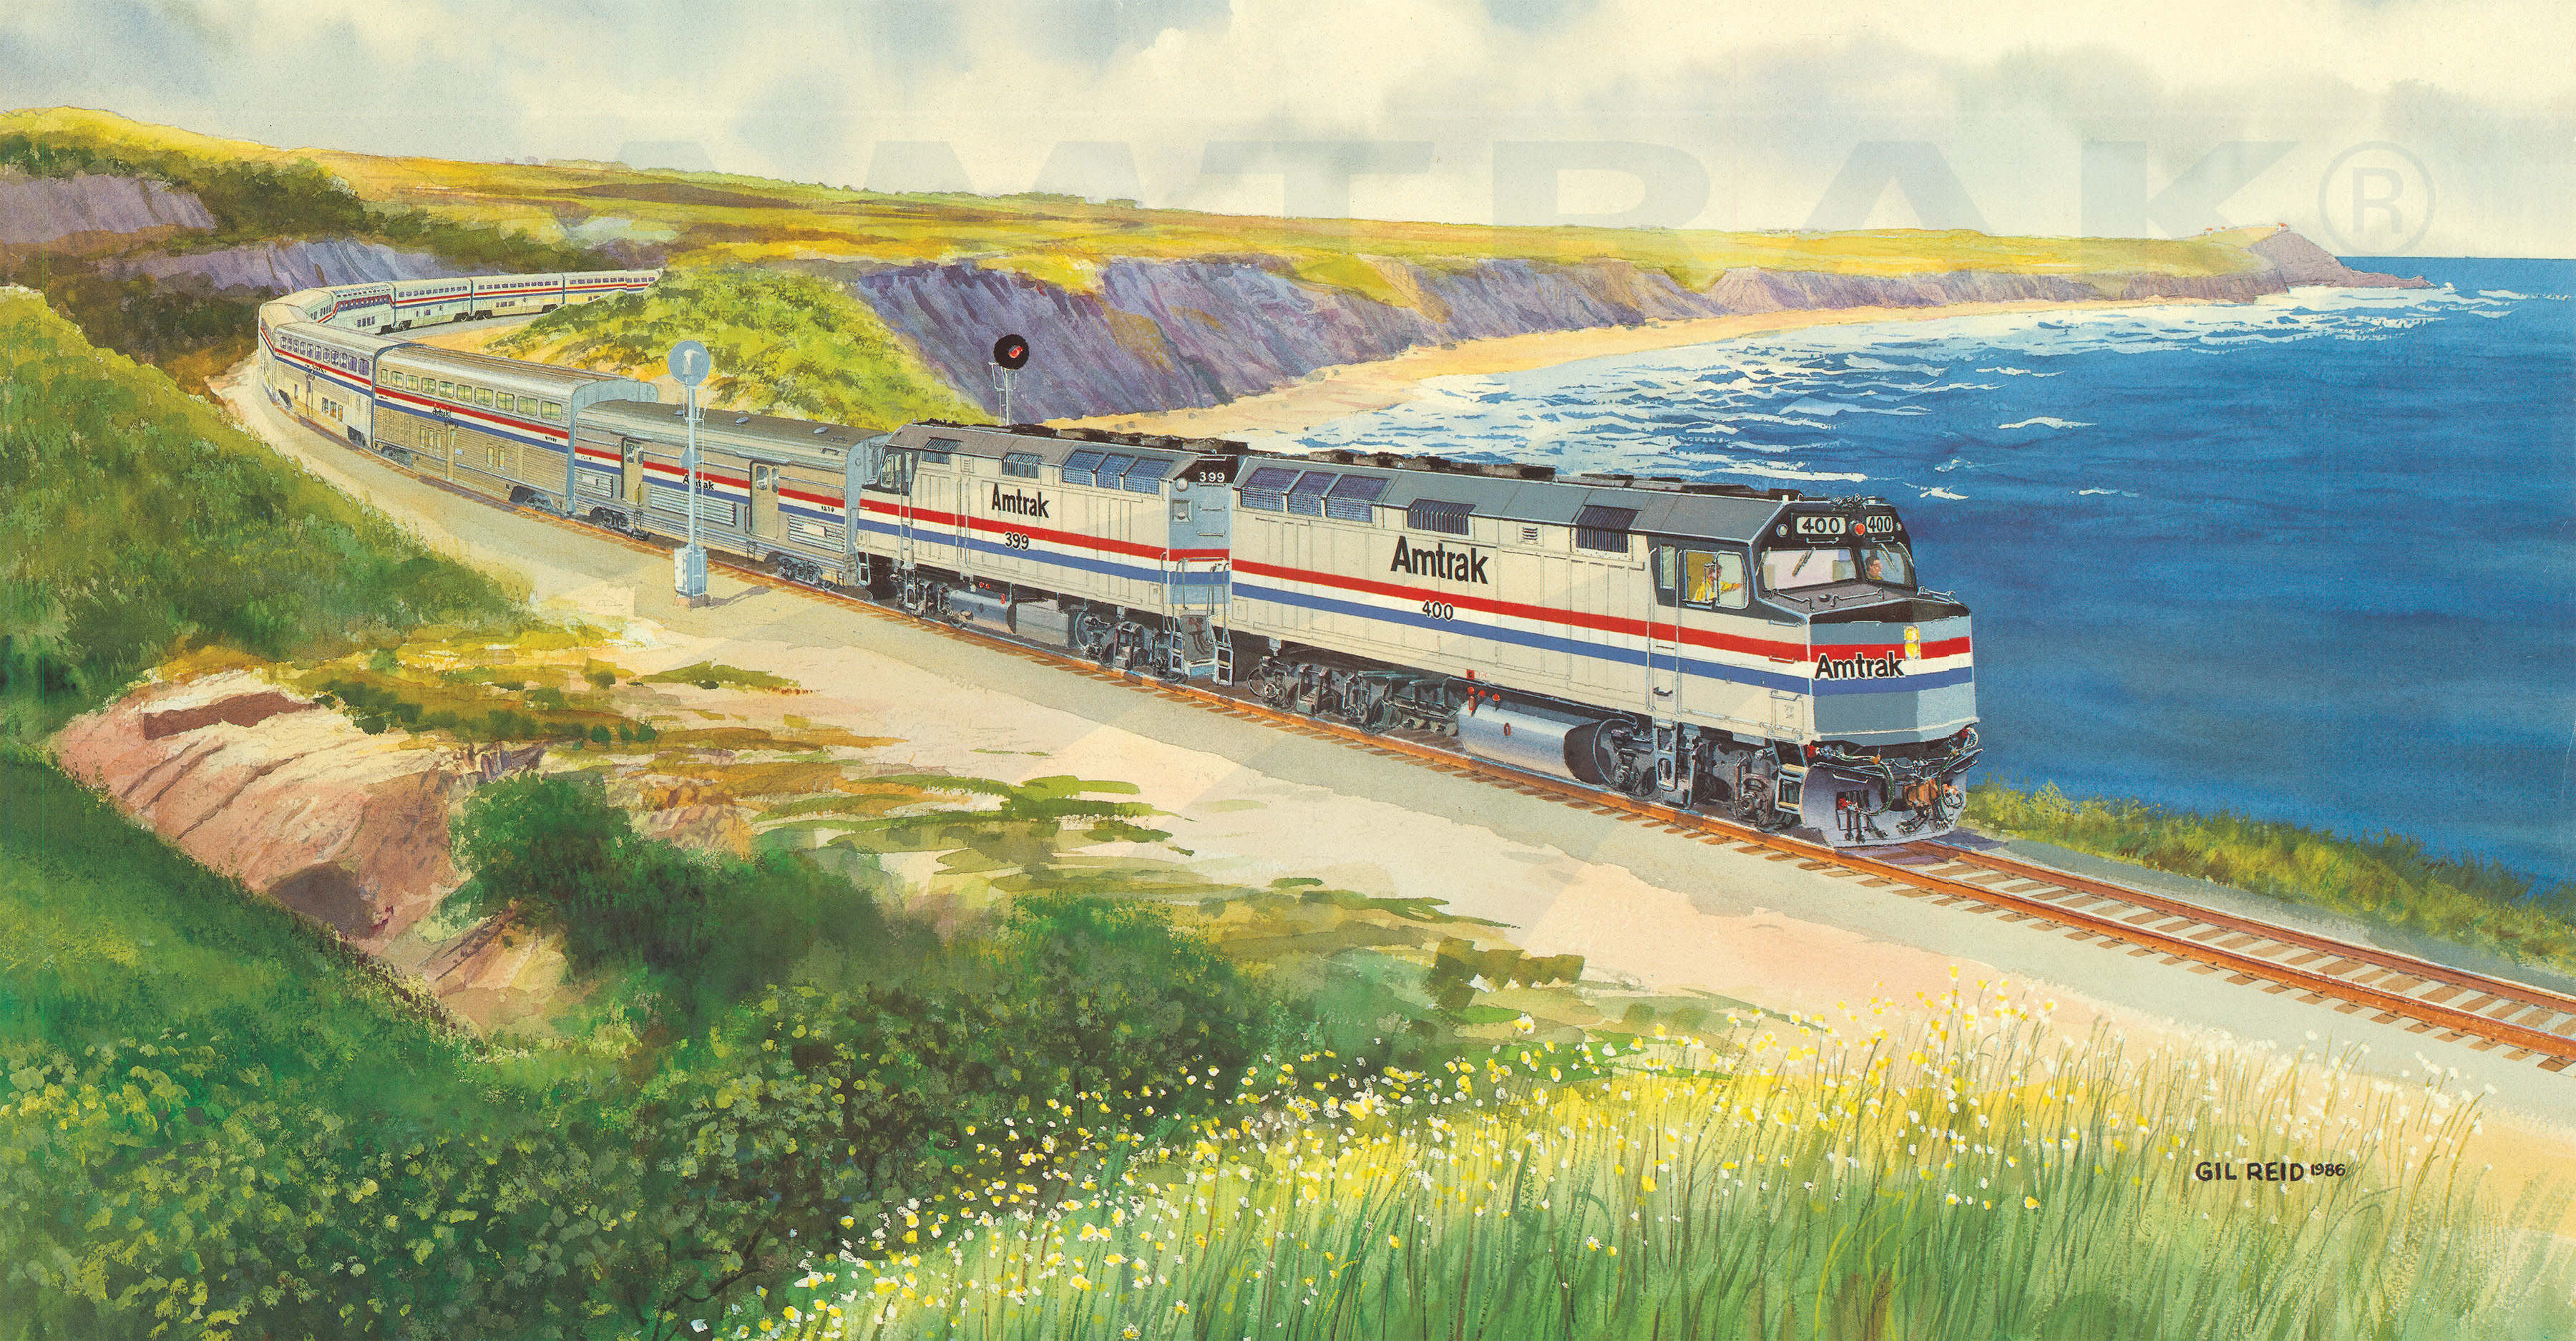 Archives amtrak history of americas railroad amtrak wall calendar 1987 publicscrutiny